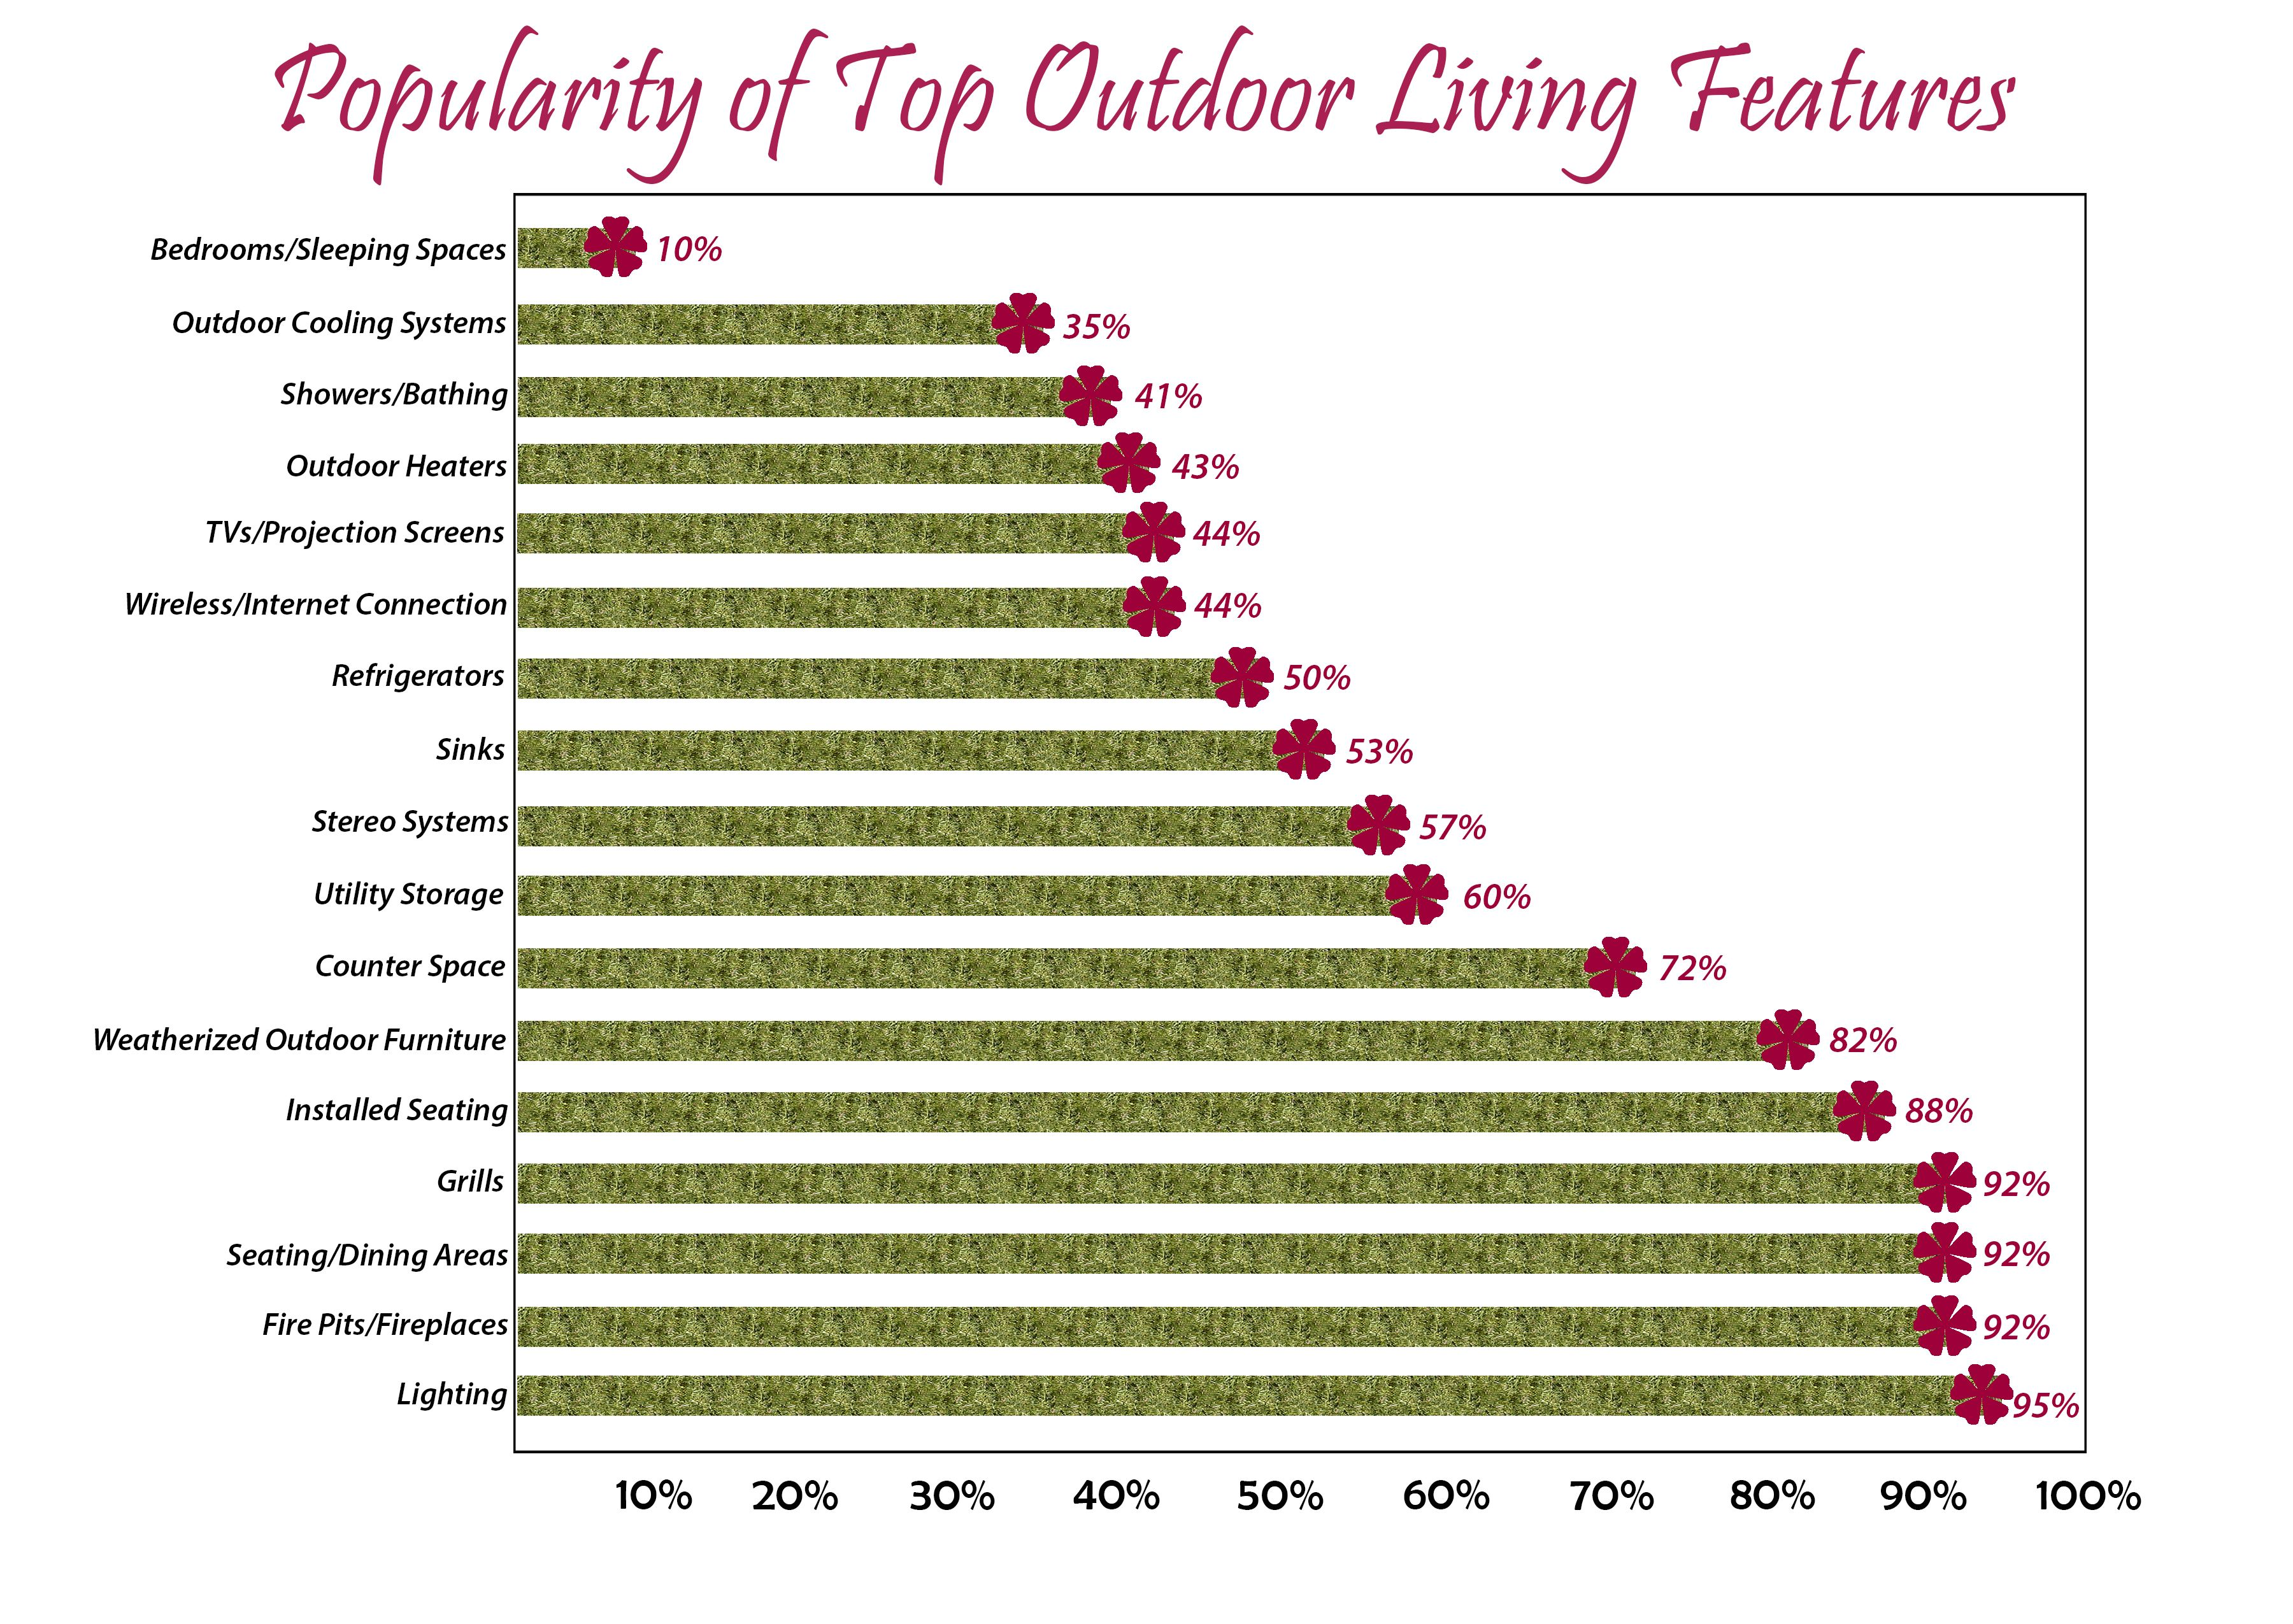 Awesome Find This Pin And More On Outdoor Living Trends U0026 Interesting Facts.